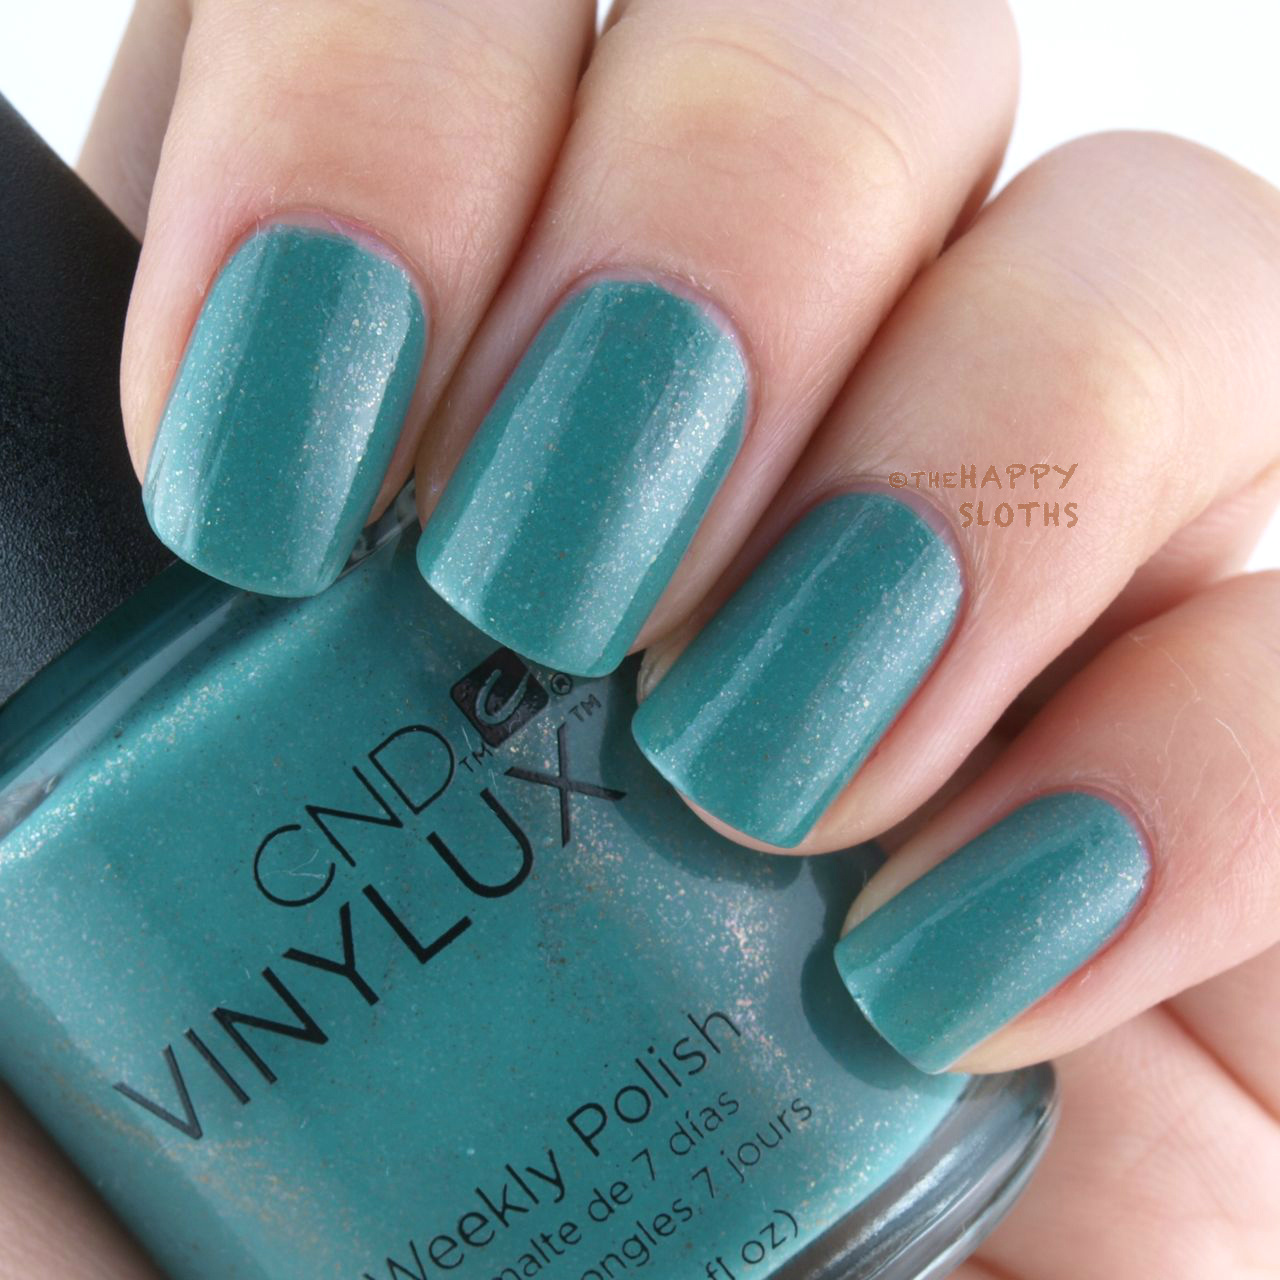 Cnd vinylux spring 2016 art vandal collection review and swatches cnd vinylux spring 2016 art vandal collection review and swatches prinsesfo Images